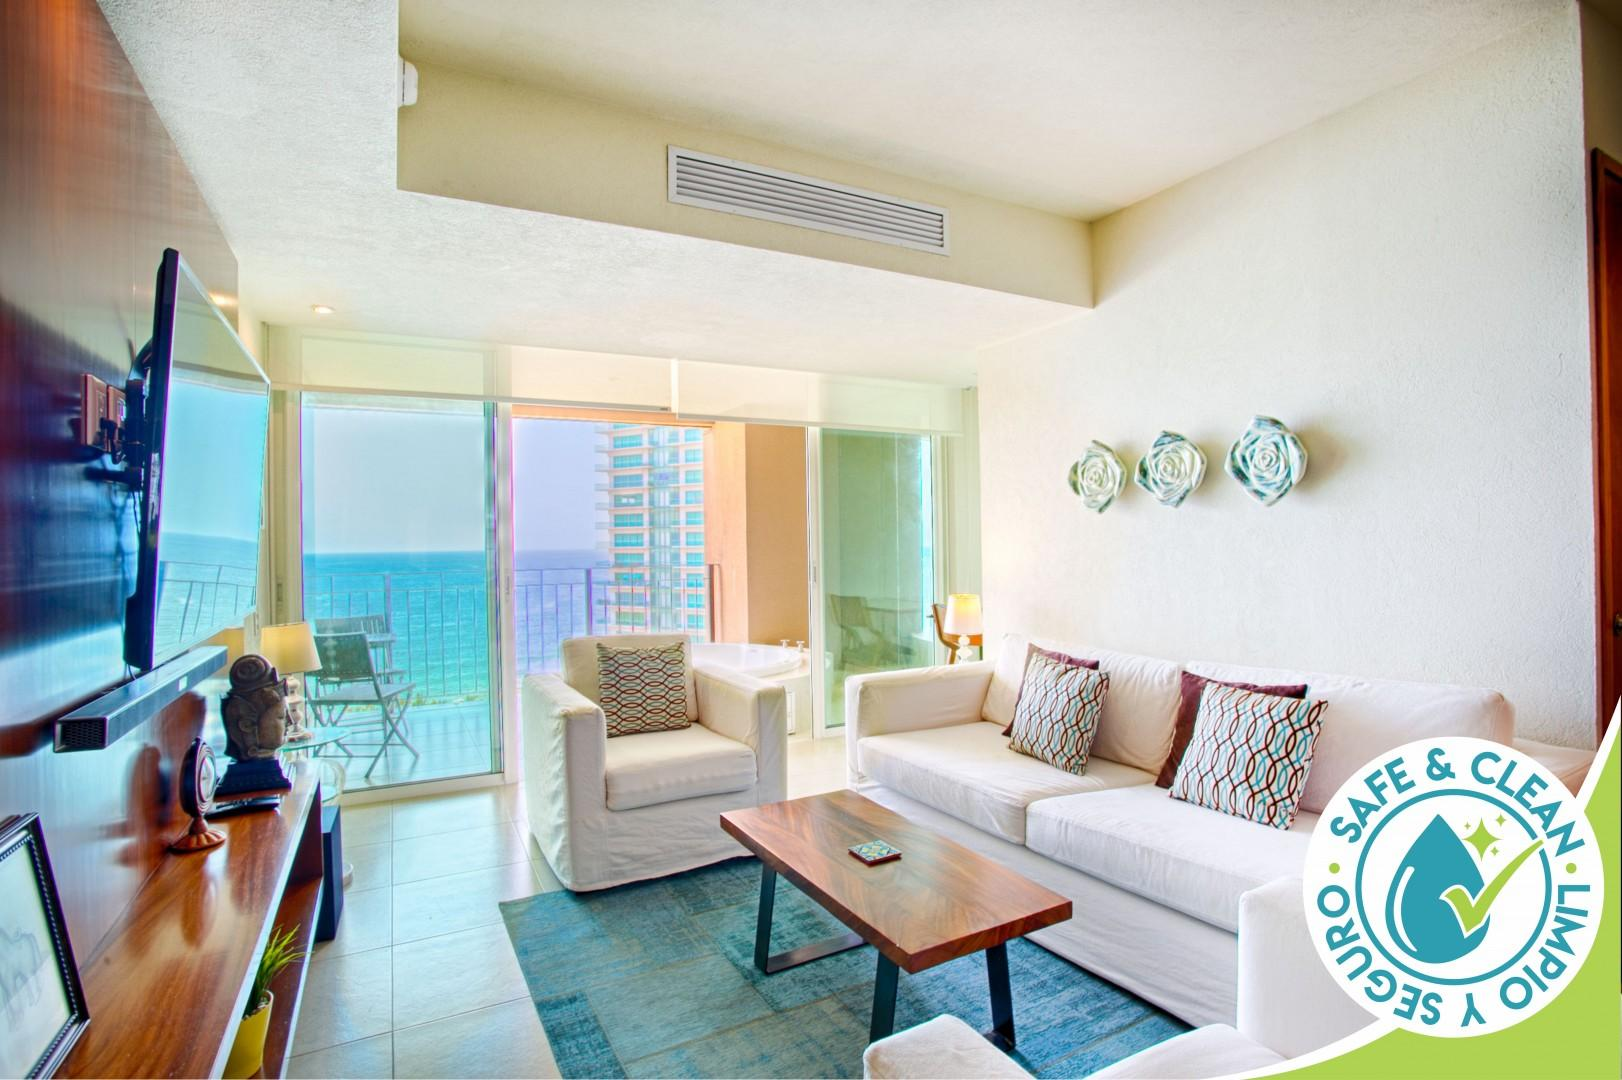 Bright and Breezy Ocean View Condo   Infinity Pools, Gym, Tennis Court